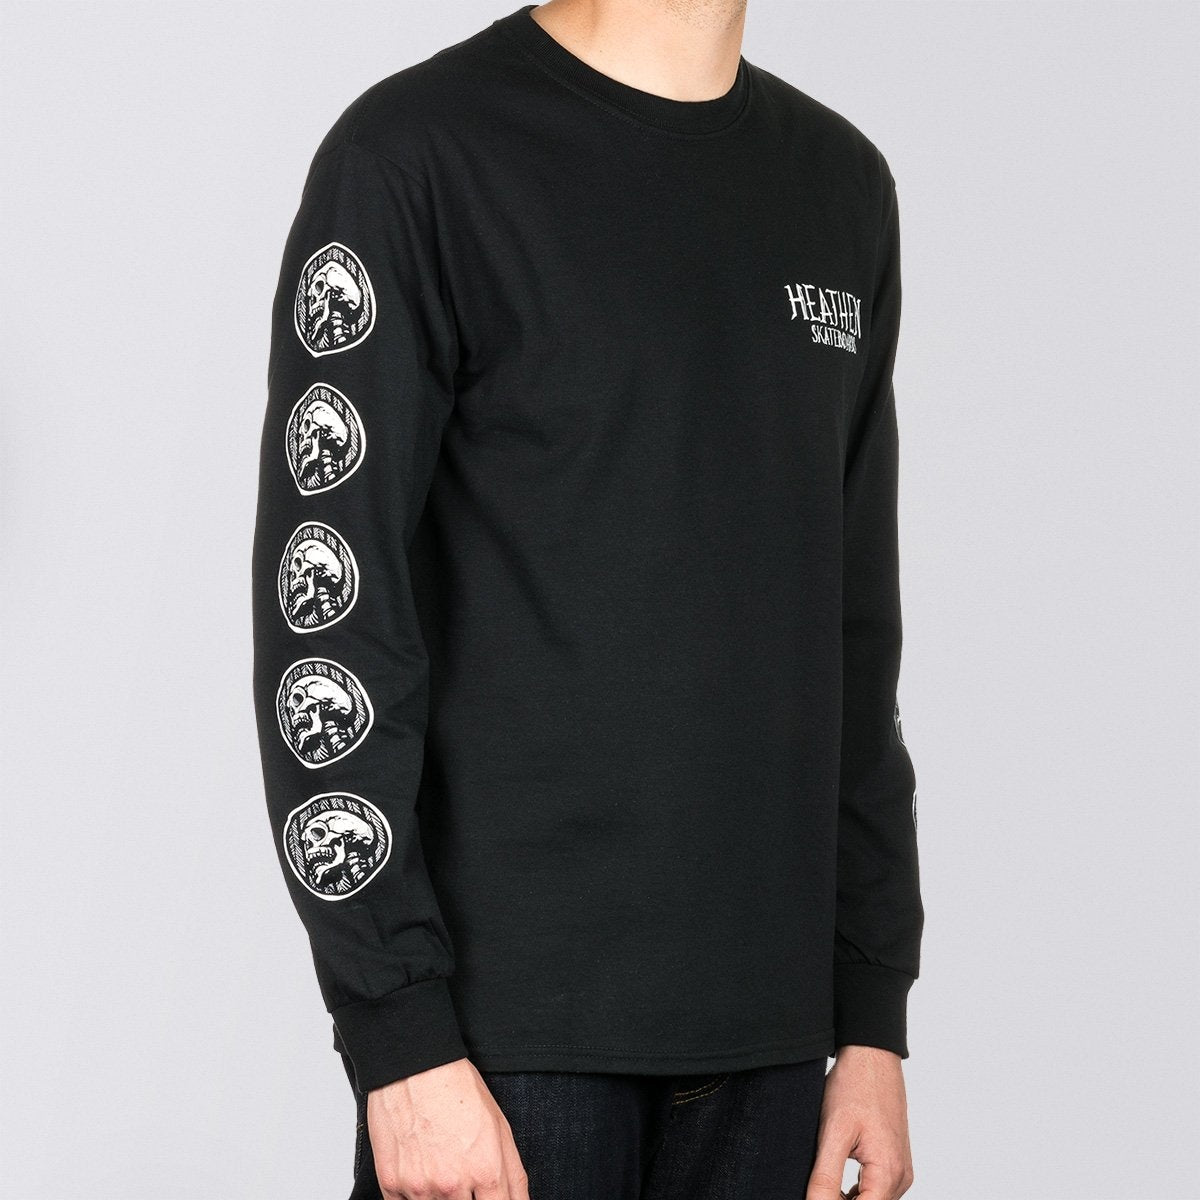 Heathen Doomsleeve Long Sleeve Tee Black/White - Clothing